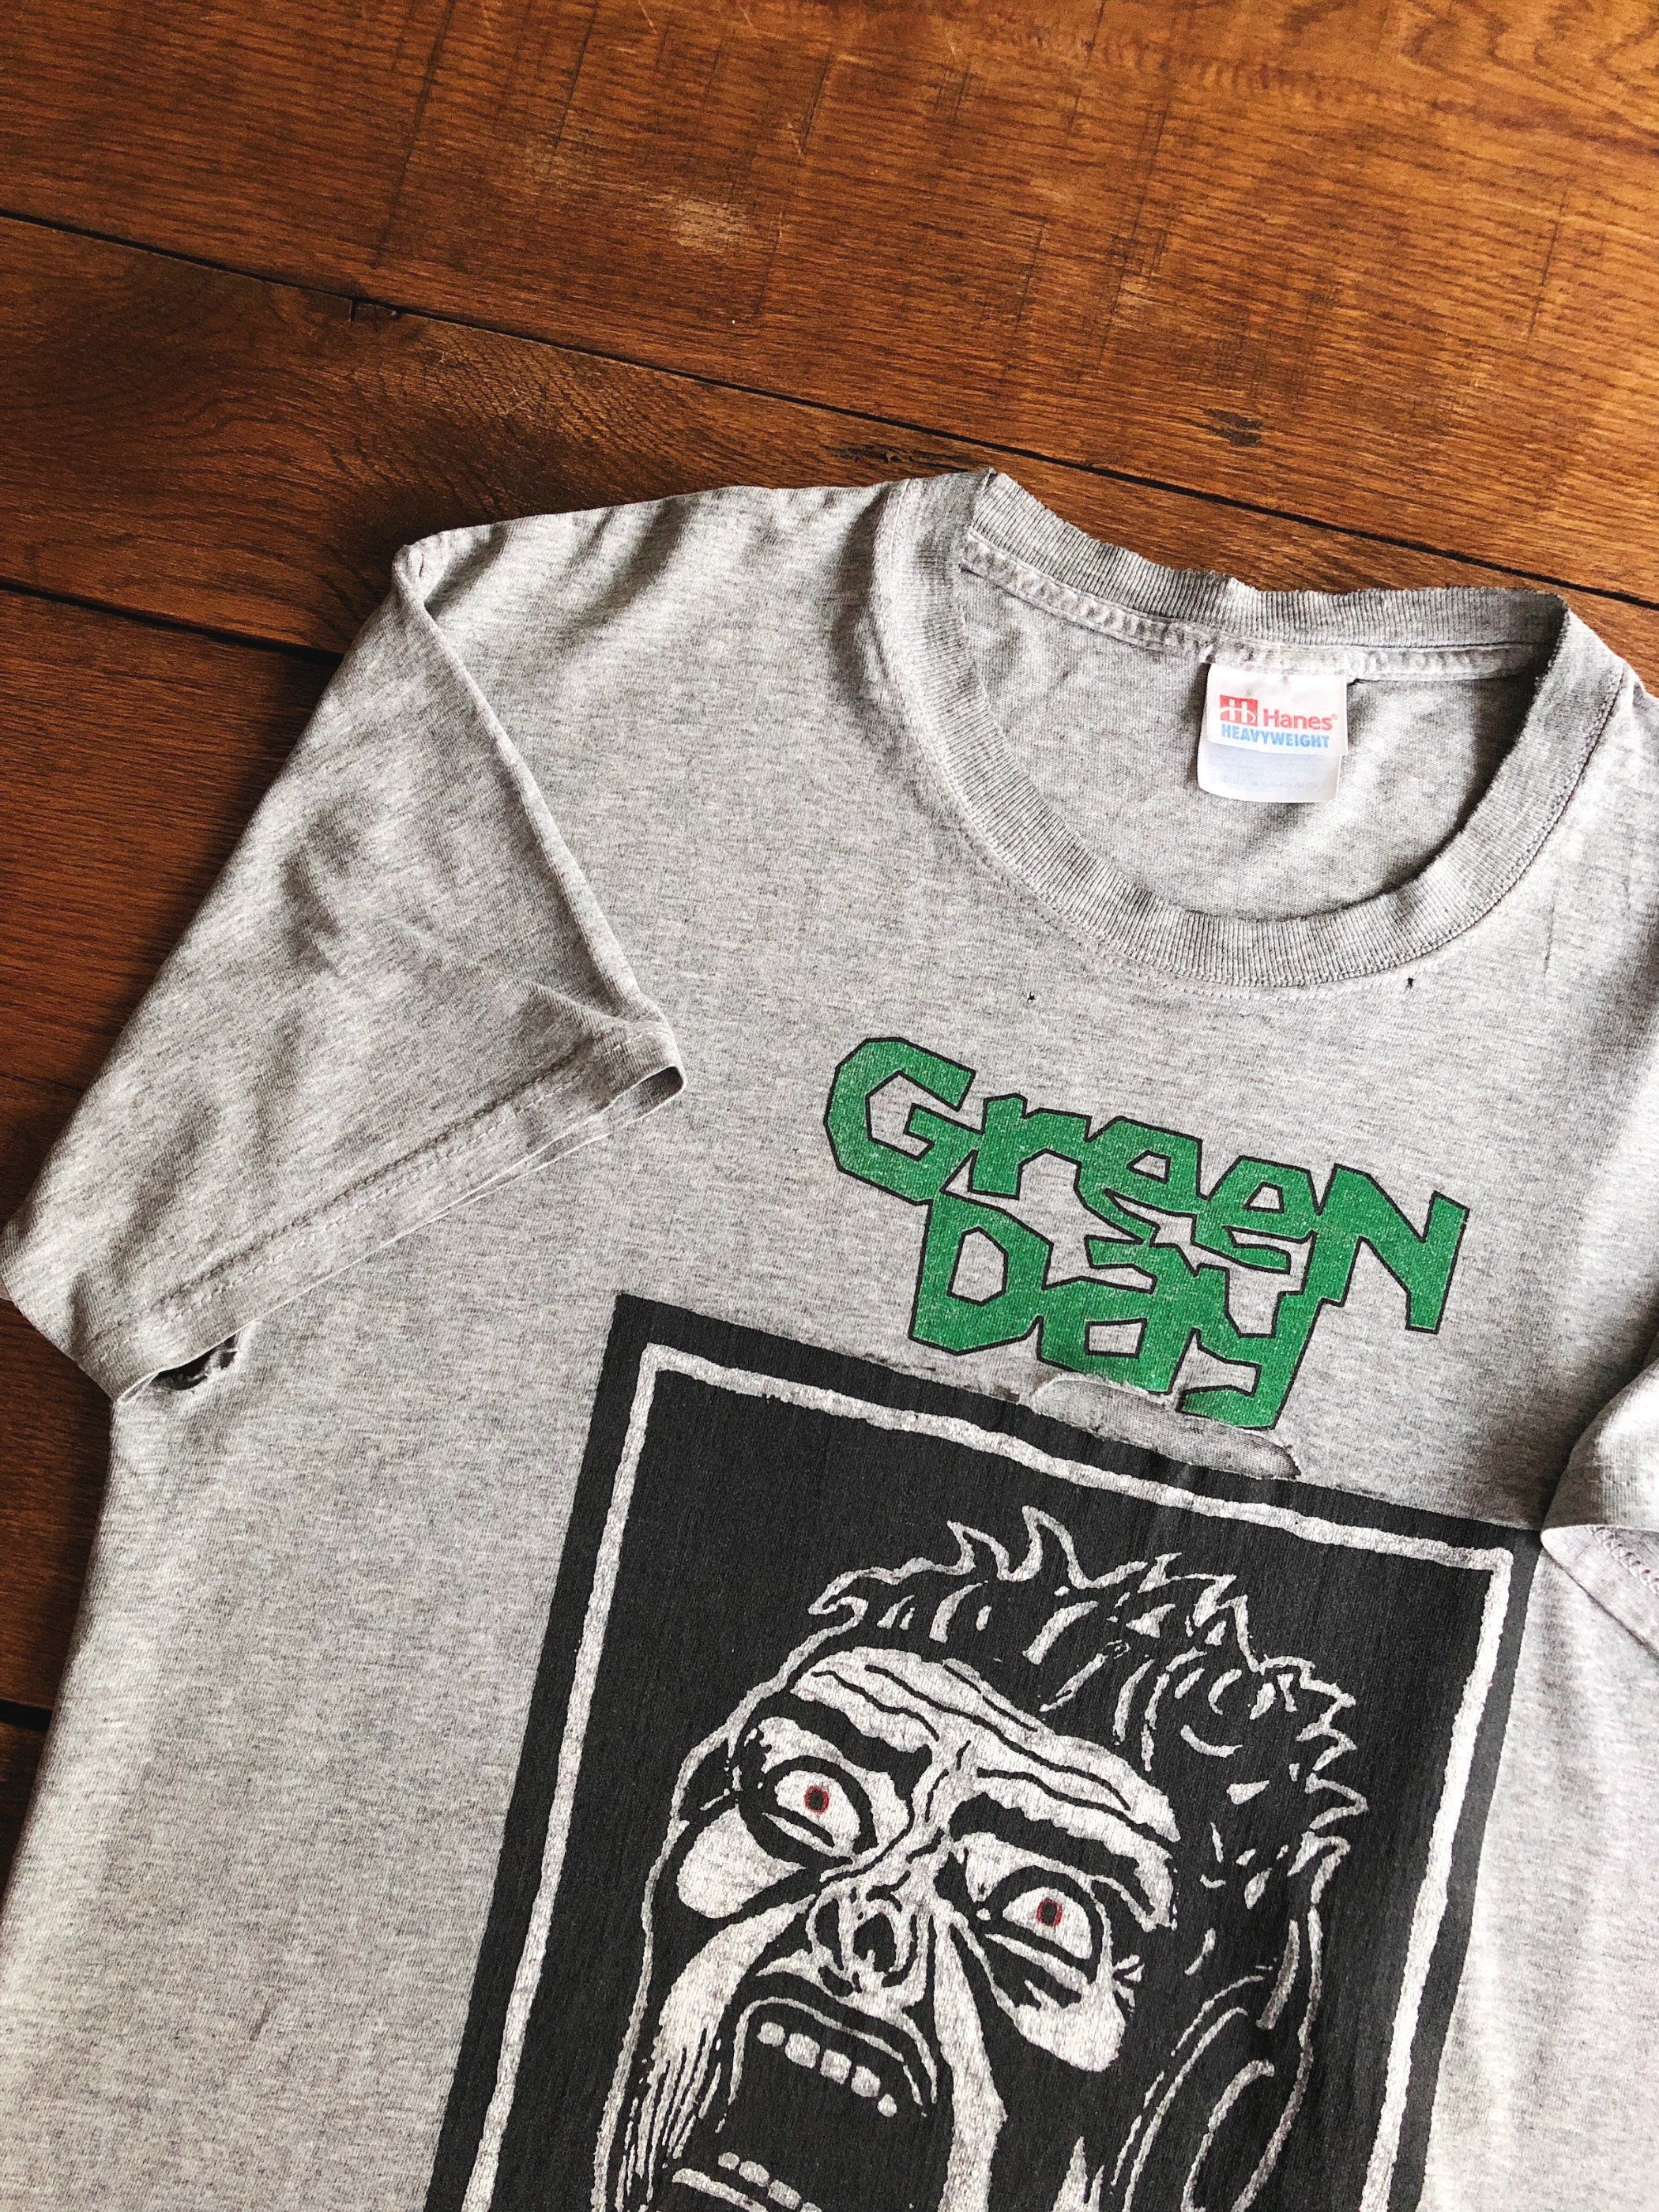 Green Day-Dookie/Basket Case 1994 T-shirt